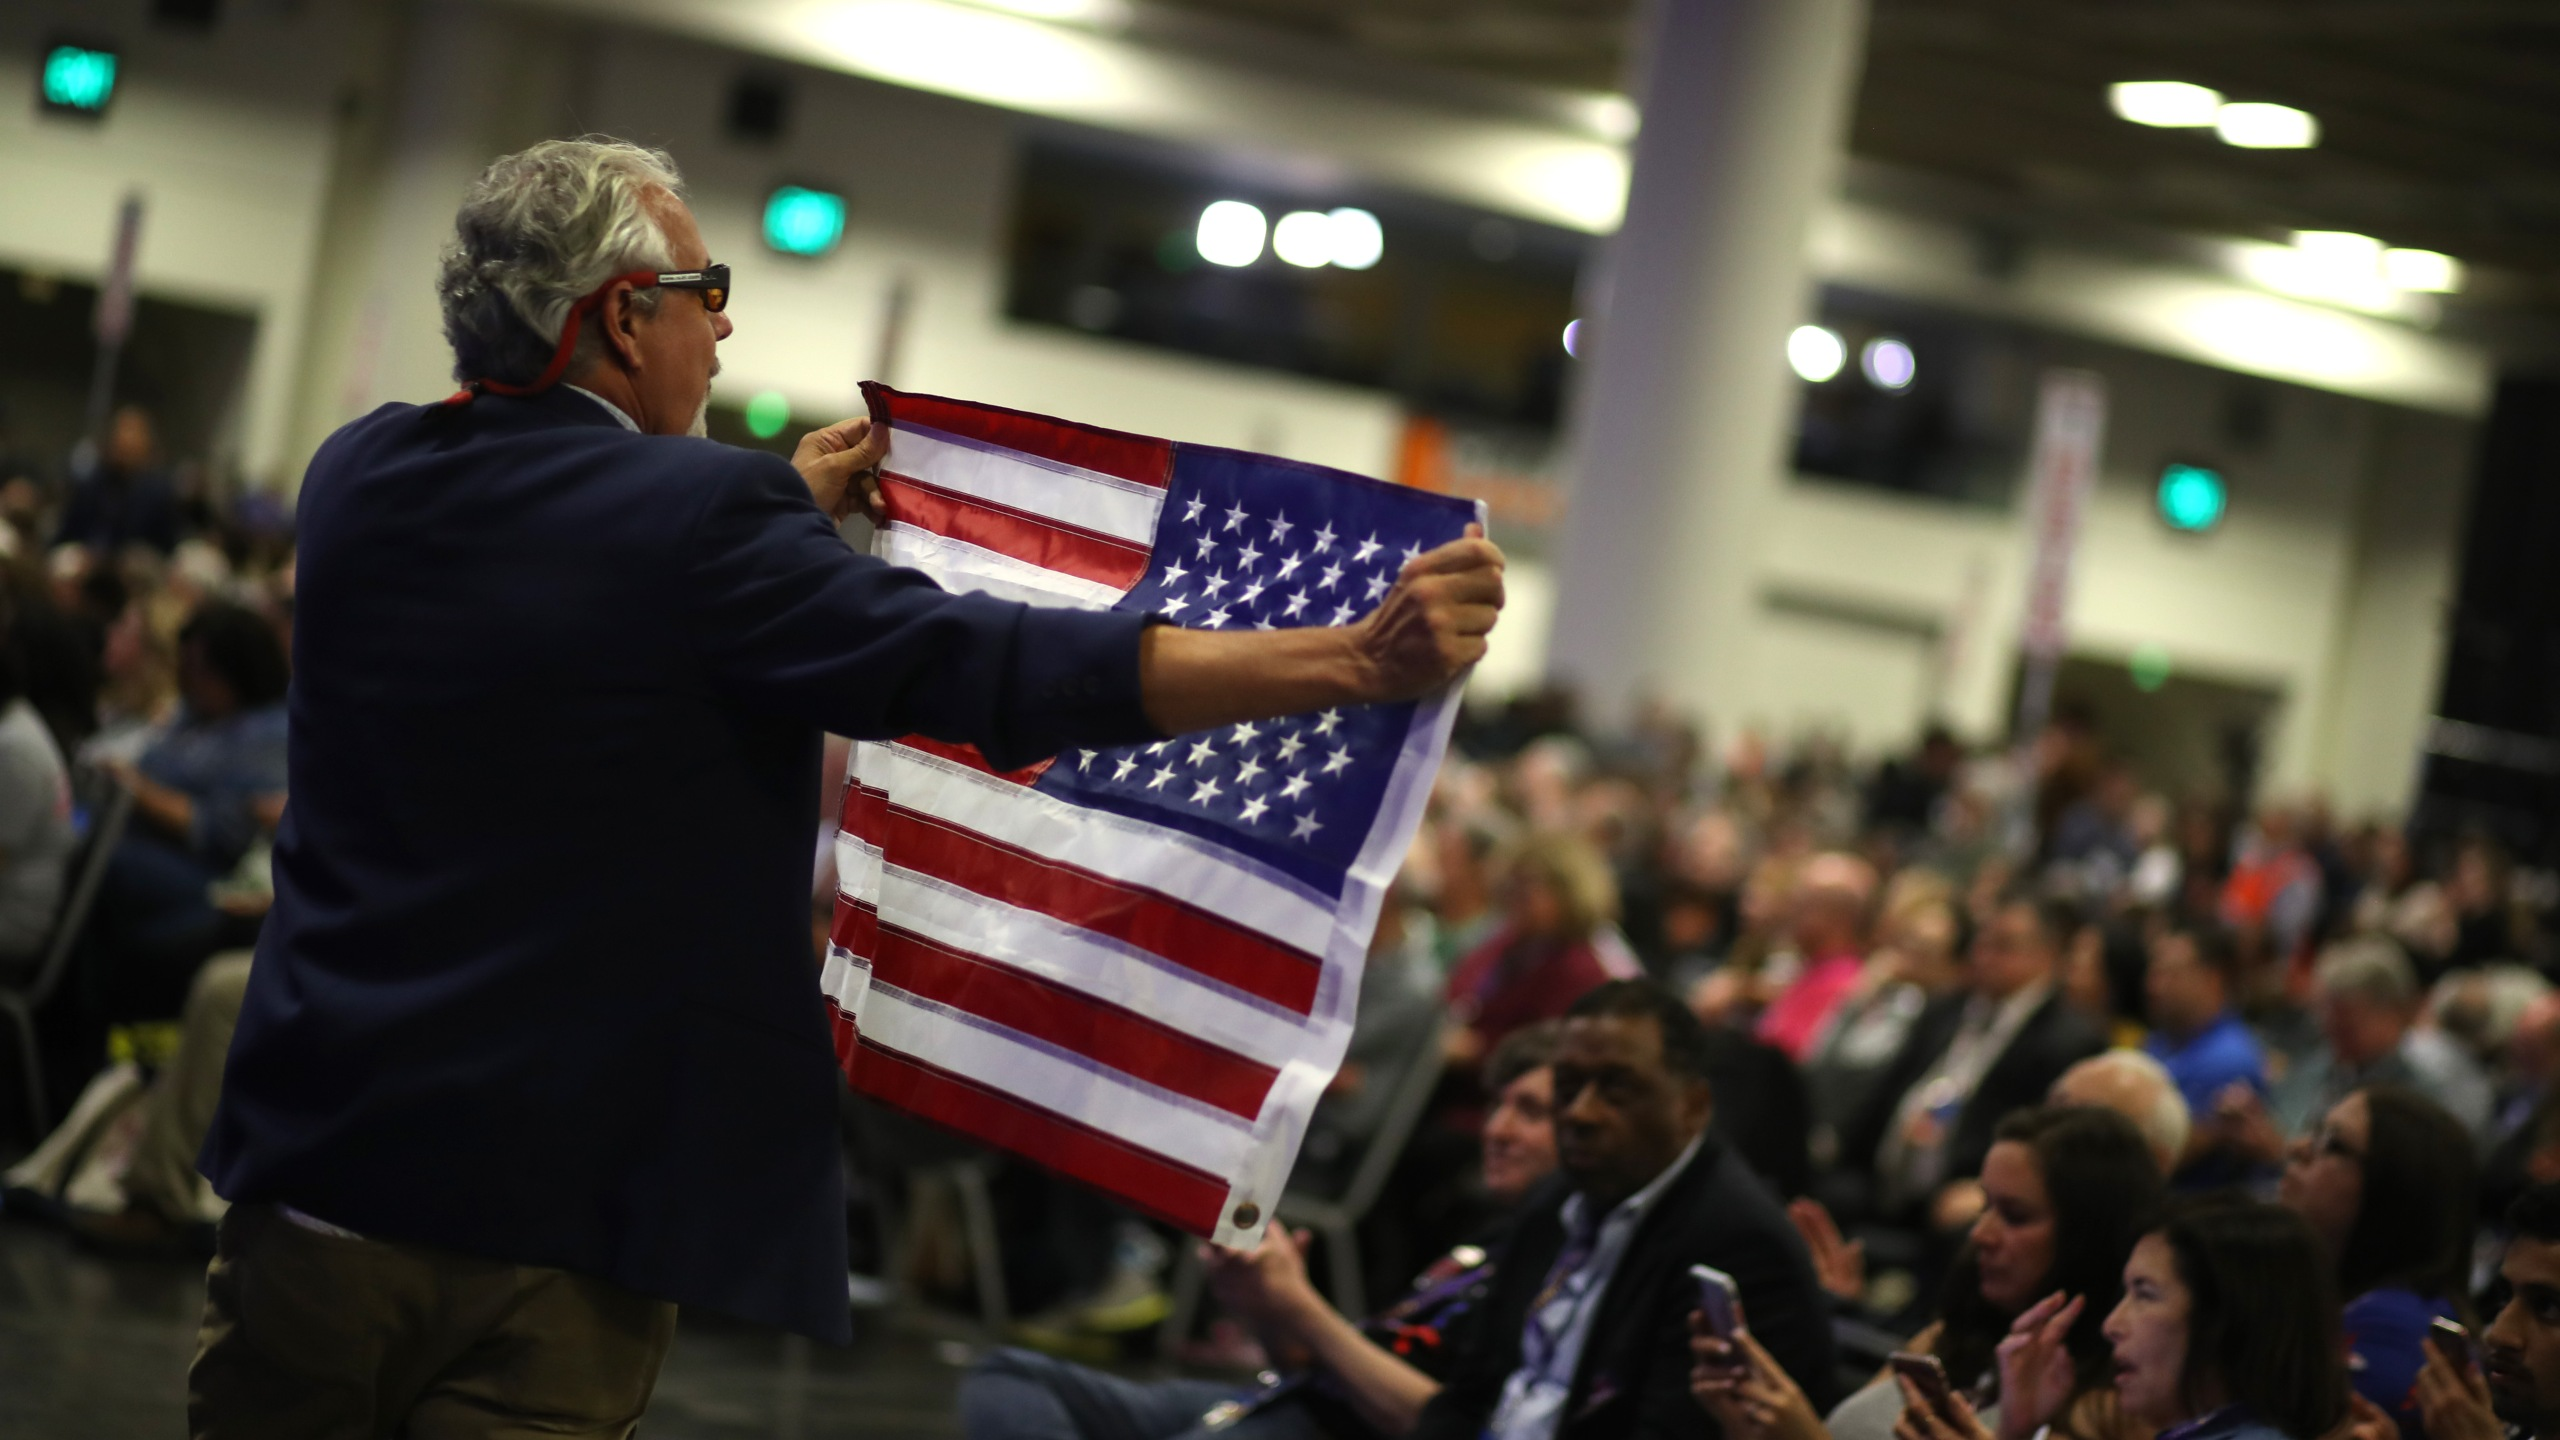 An attendee carries an American flag during the California Democrats 2019 State Convention at the Moscone Center on June 1, 2019, in San Francisco. (Credit: Justin Sullivan/Getty Images)